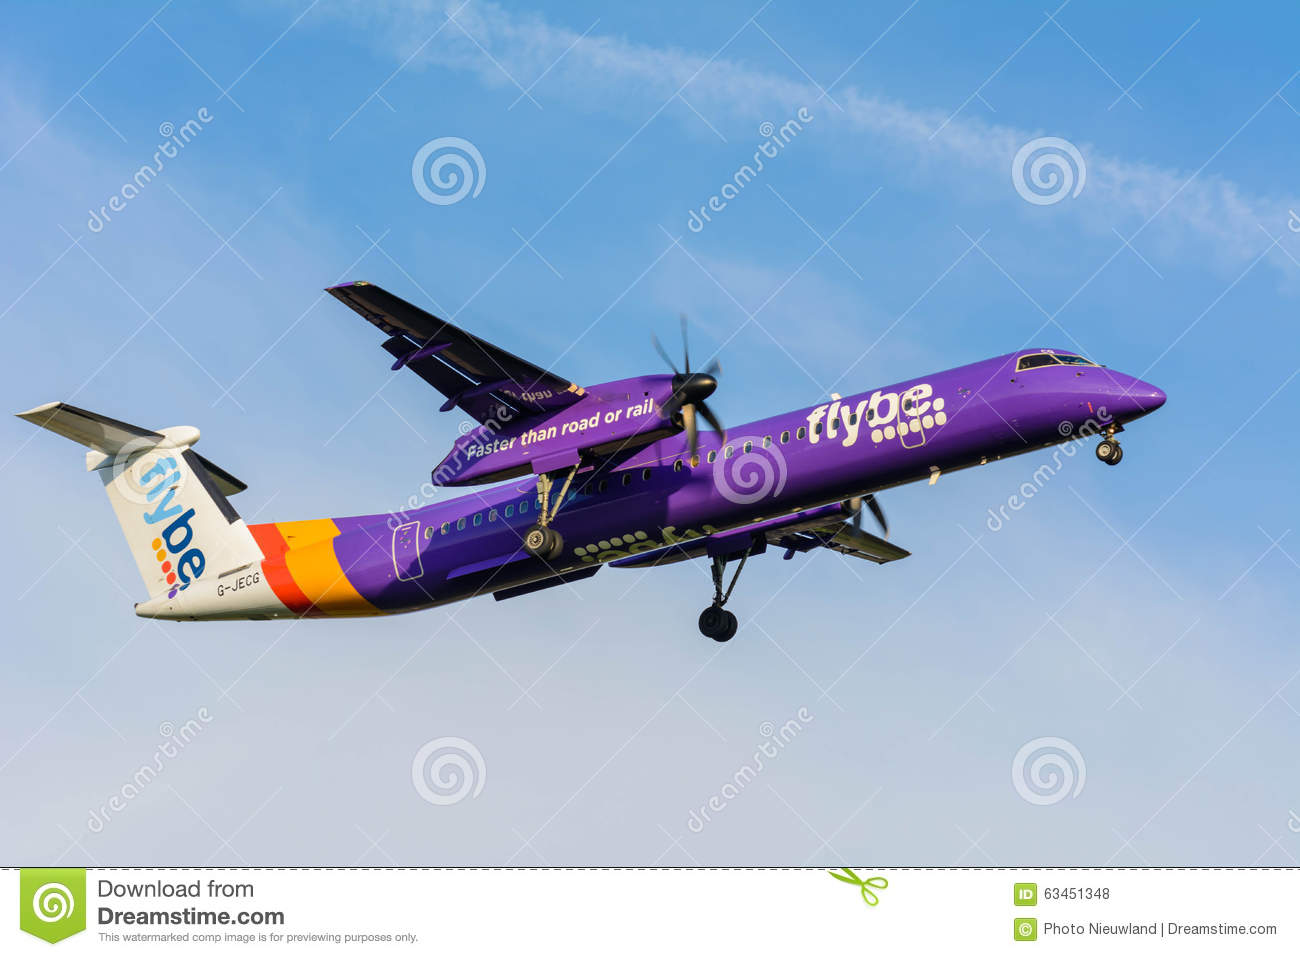 Schiphol, Noord-Holland/Netherlands- October 26-10-2015 -Plane from Flybe  Dash 8 G-JECG is preparing for landing at Schiphol airport.